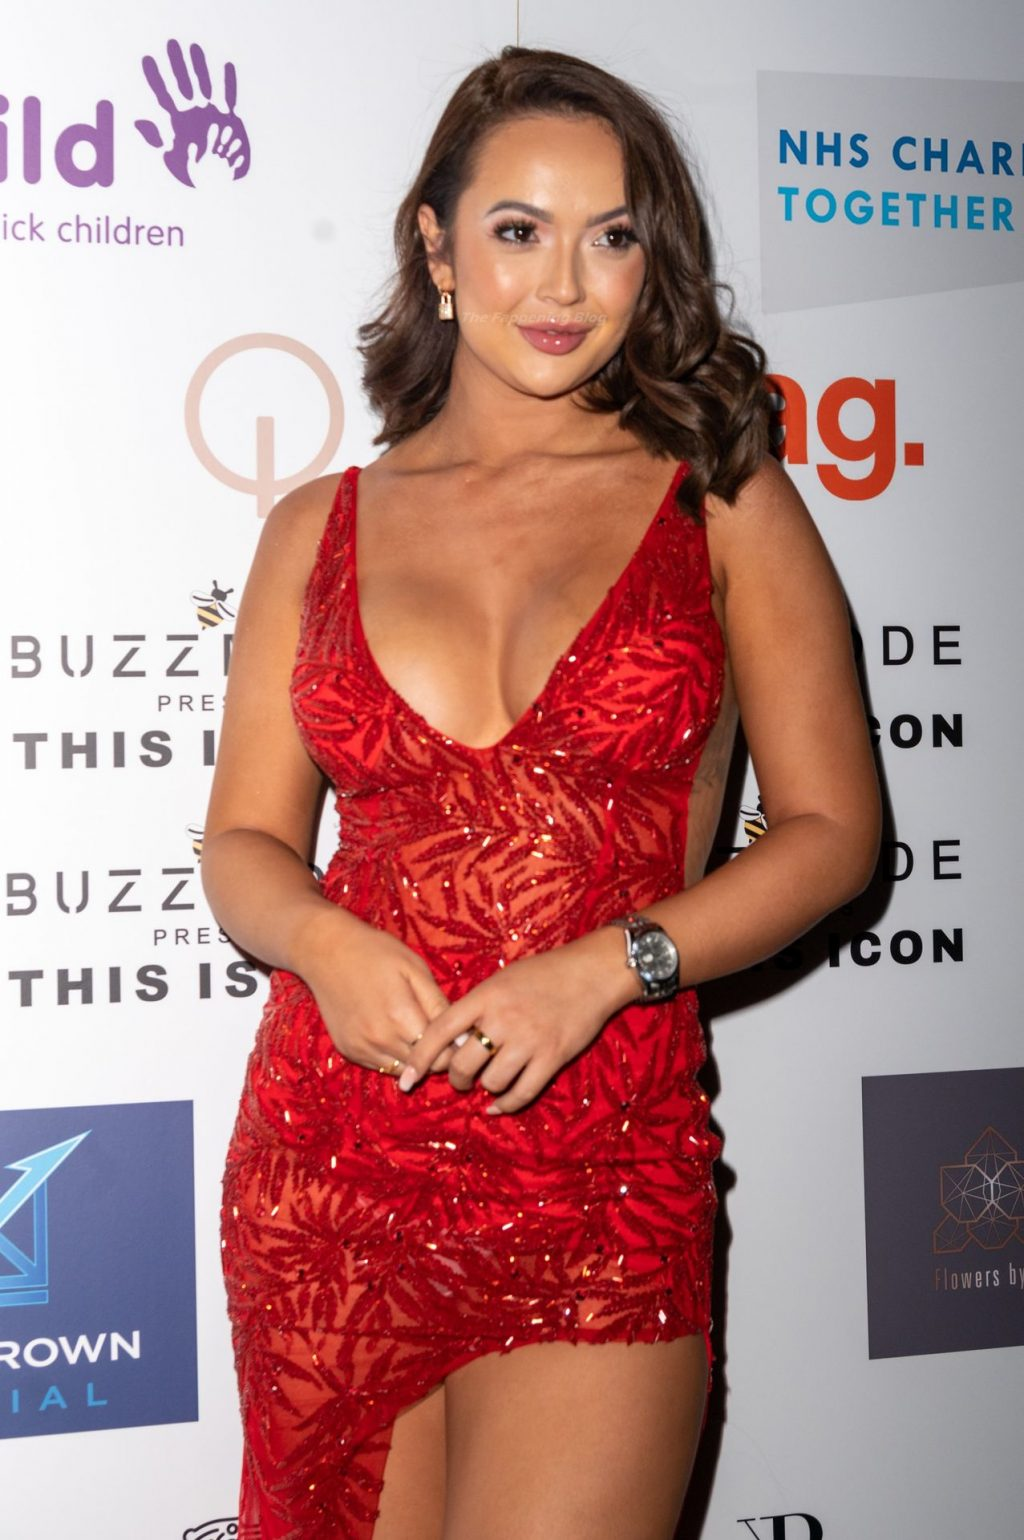 Sharon Gaffka Displays Her Cleavage in a Red Dress at the Party (20 Photos)